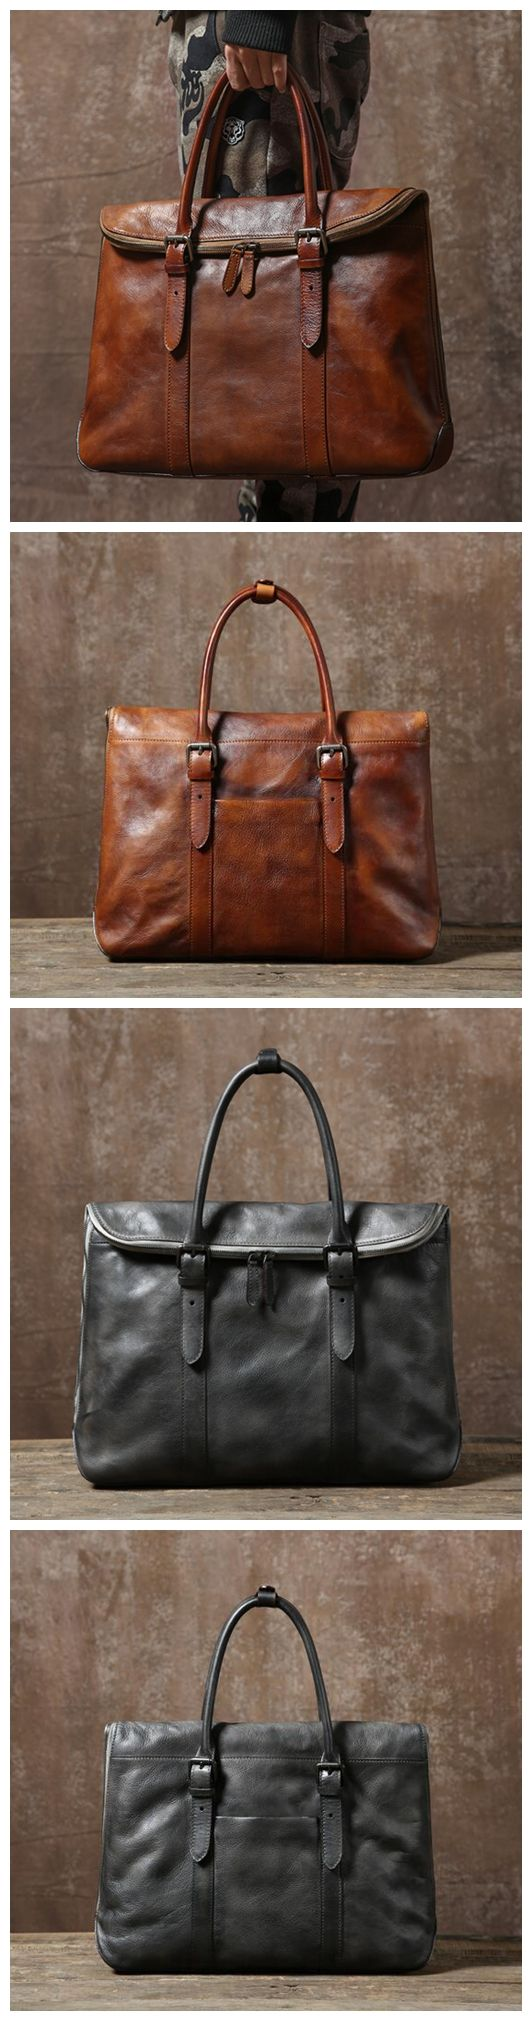 37bf12bf10 Handmade Vintage Top Grain Leather Briefcase 14   Leather Laptop Bag Men s  Fashion Business Bag GR02 Overview: Design  Men s Leather Briefcase In  Stock  ...